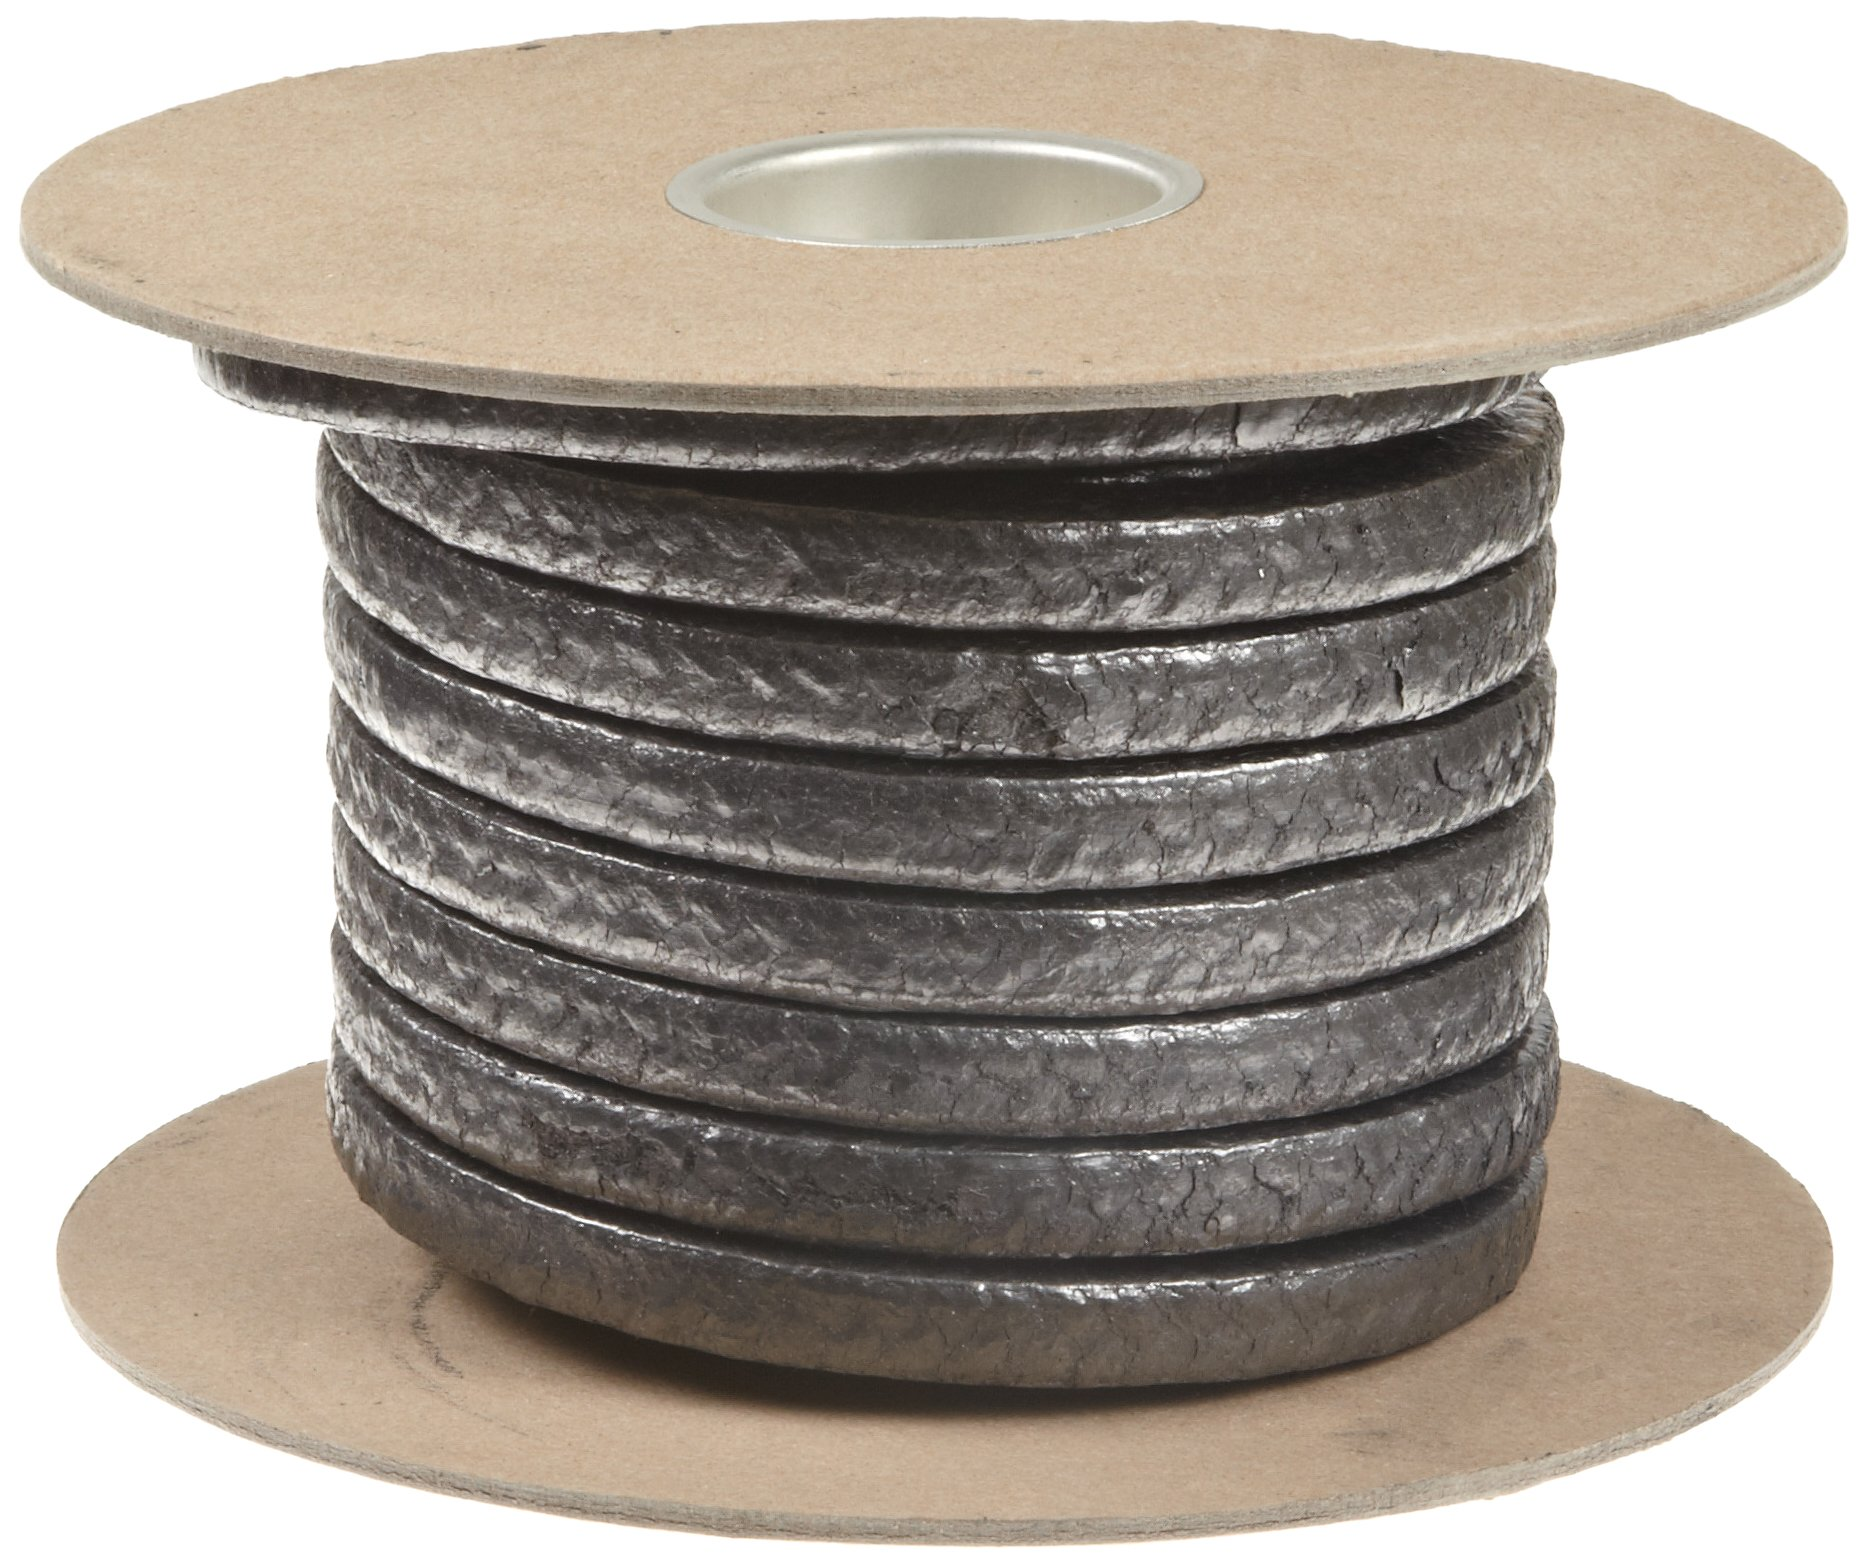 Palmetto 1030AF Series Graphite Impregnated Kynol/Aramid Compression Packing Seal, Dull Gray, 3/8'' Square, 5' Length